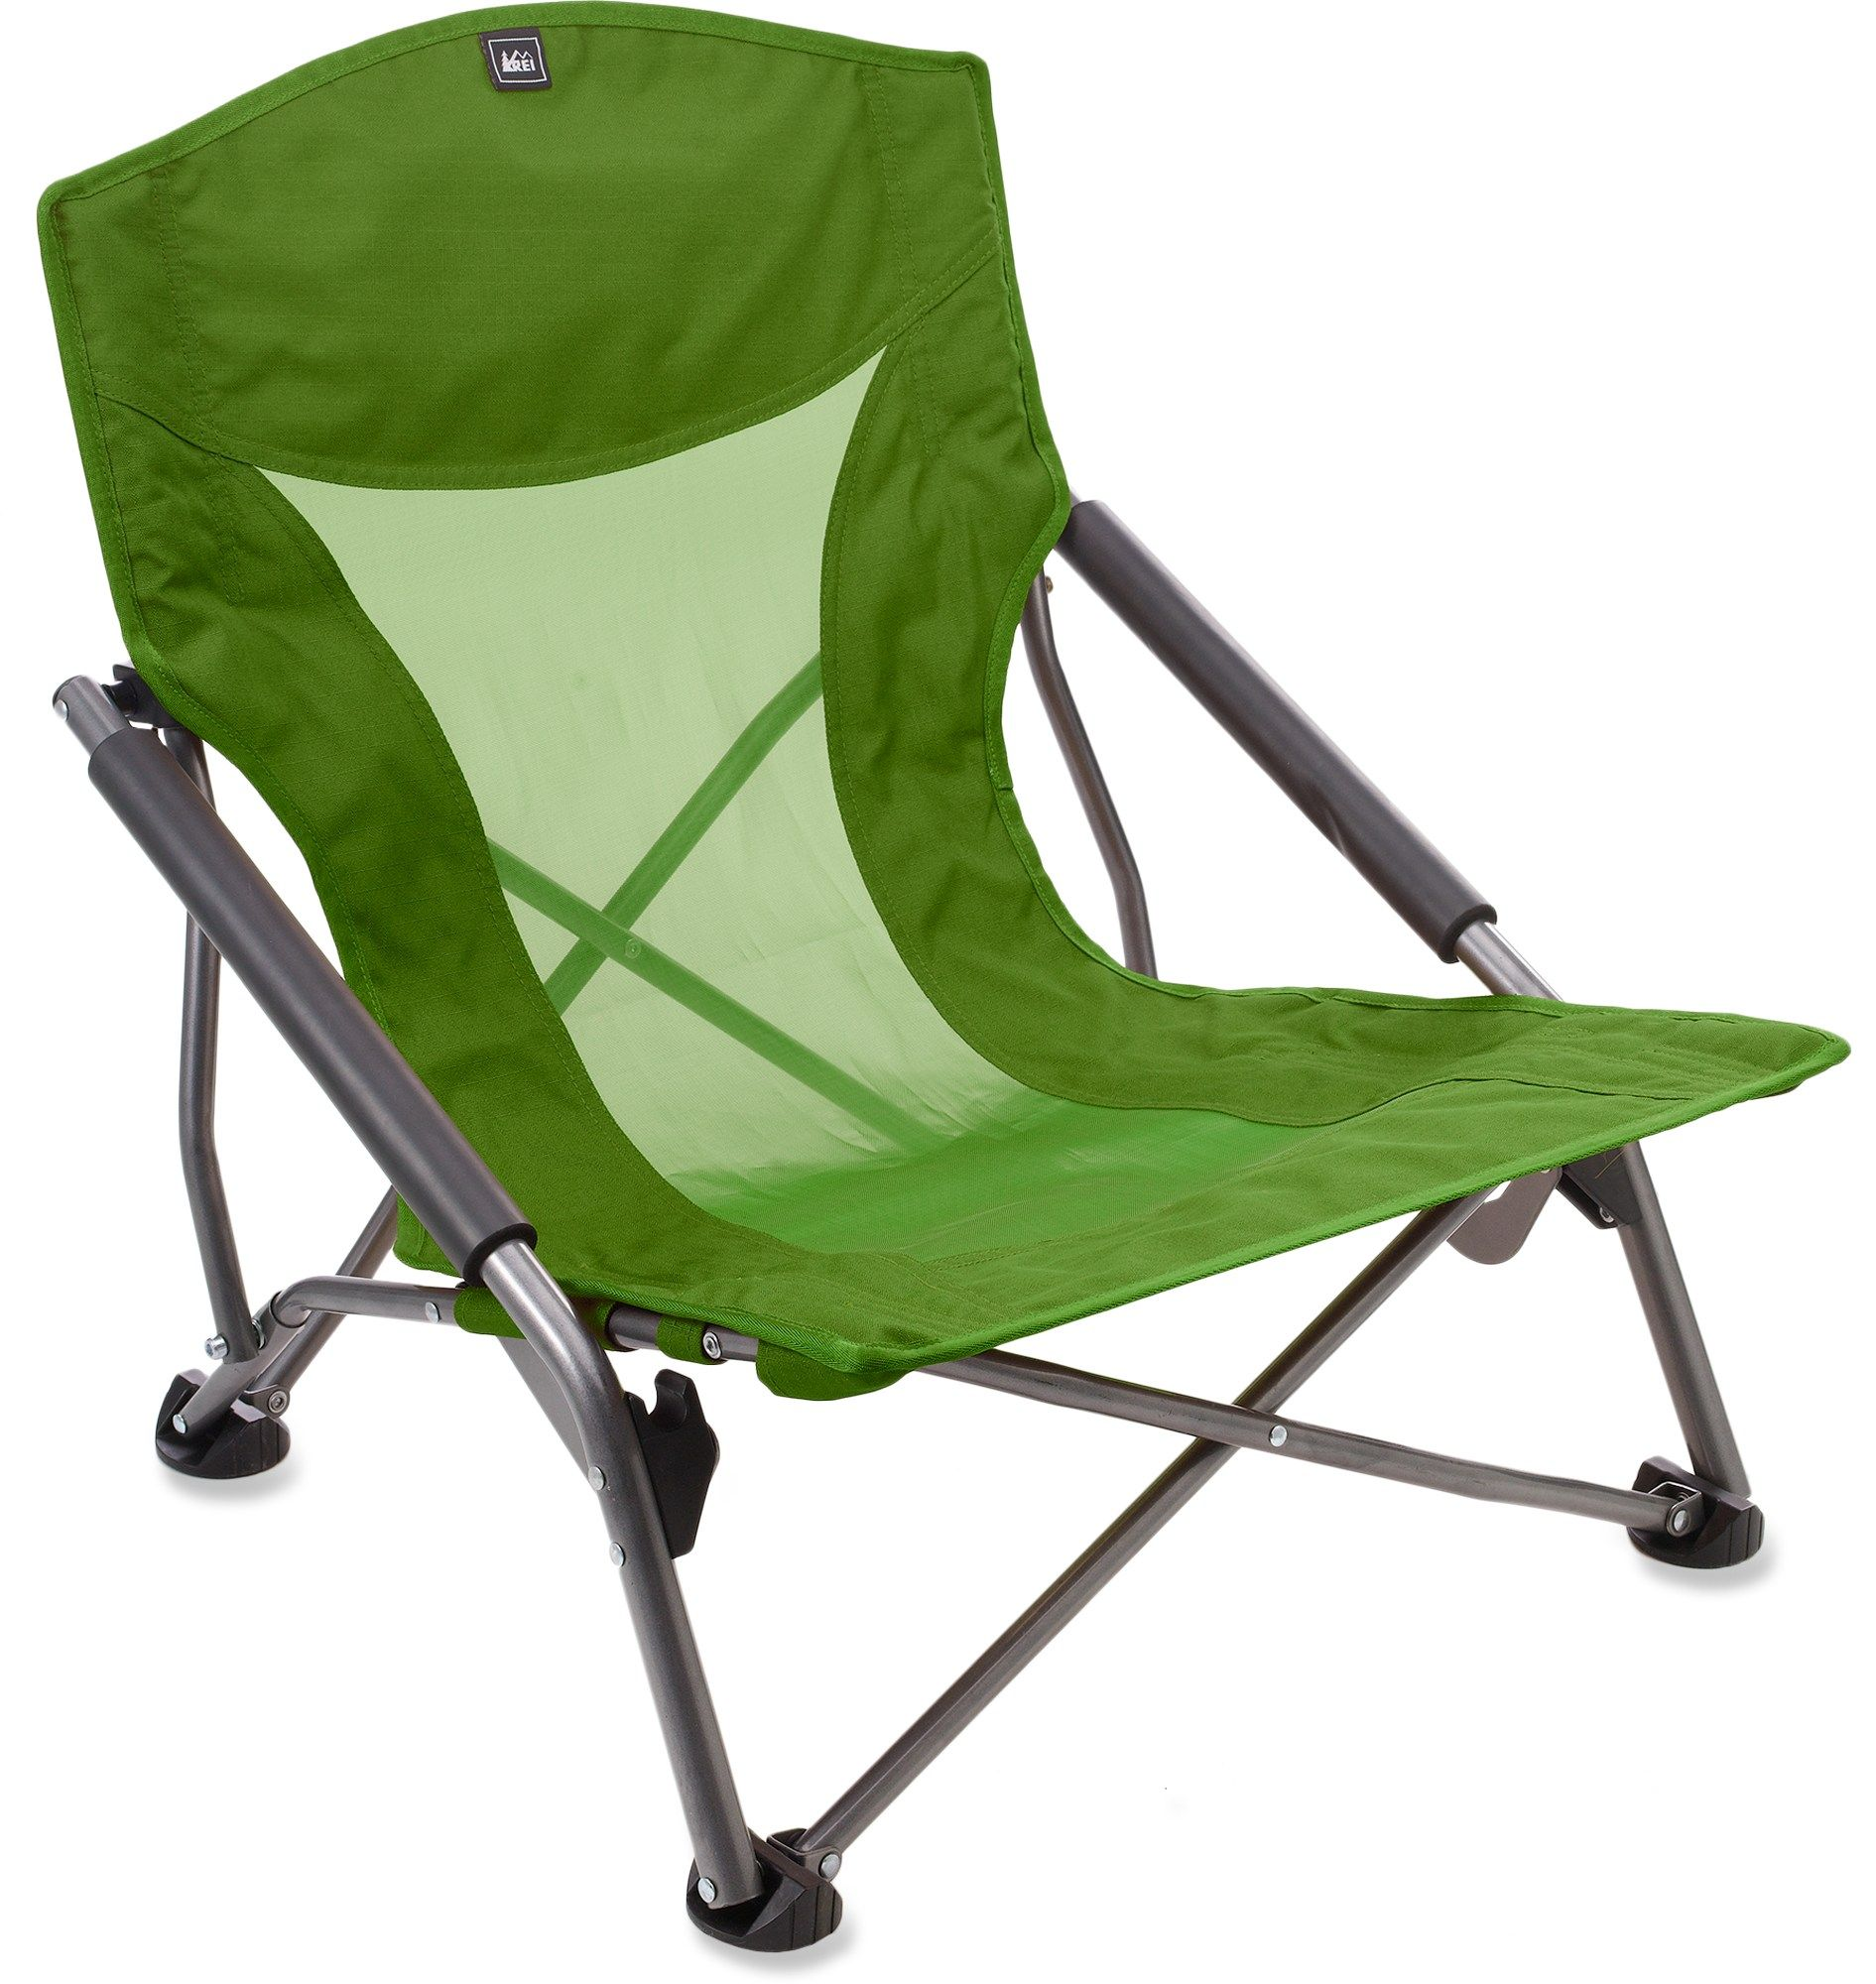 Lightweight camping chairs - Camp Stowaway Low Chair